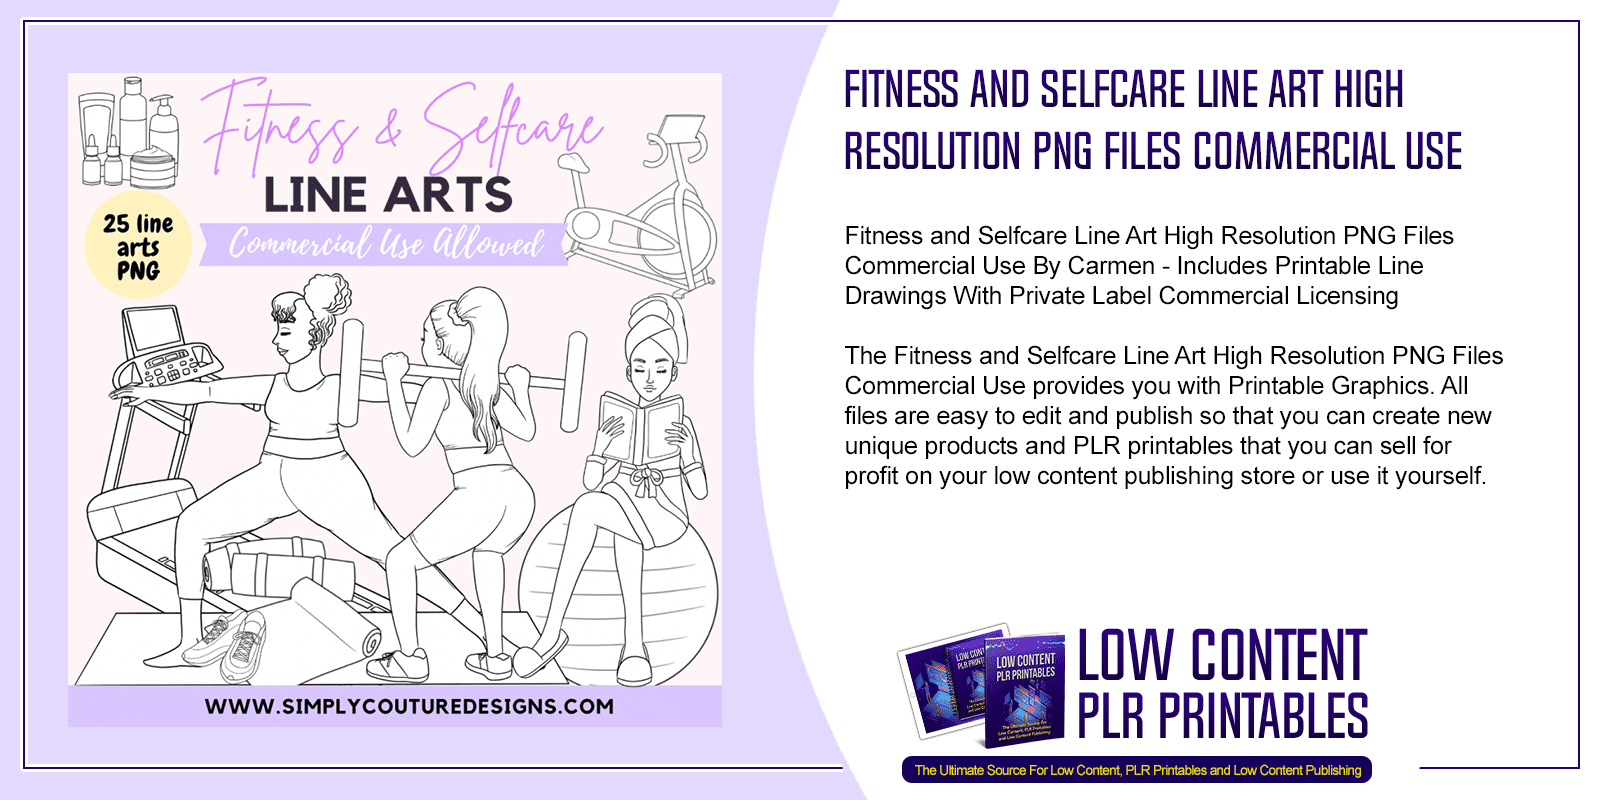 Fitness and Selfcare Line Art High Resolution PNG Files Commercial Use